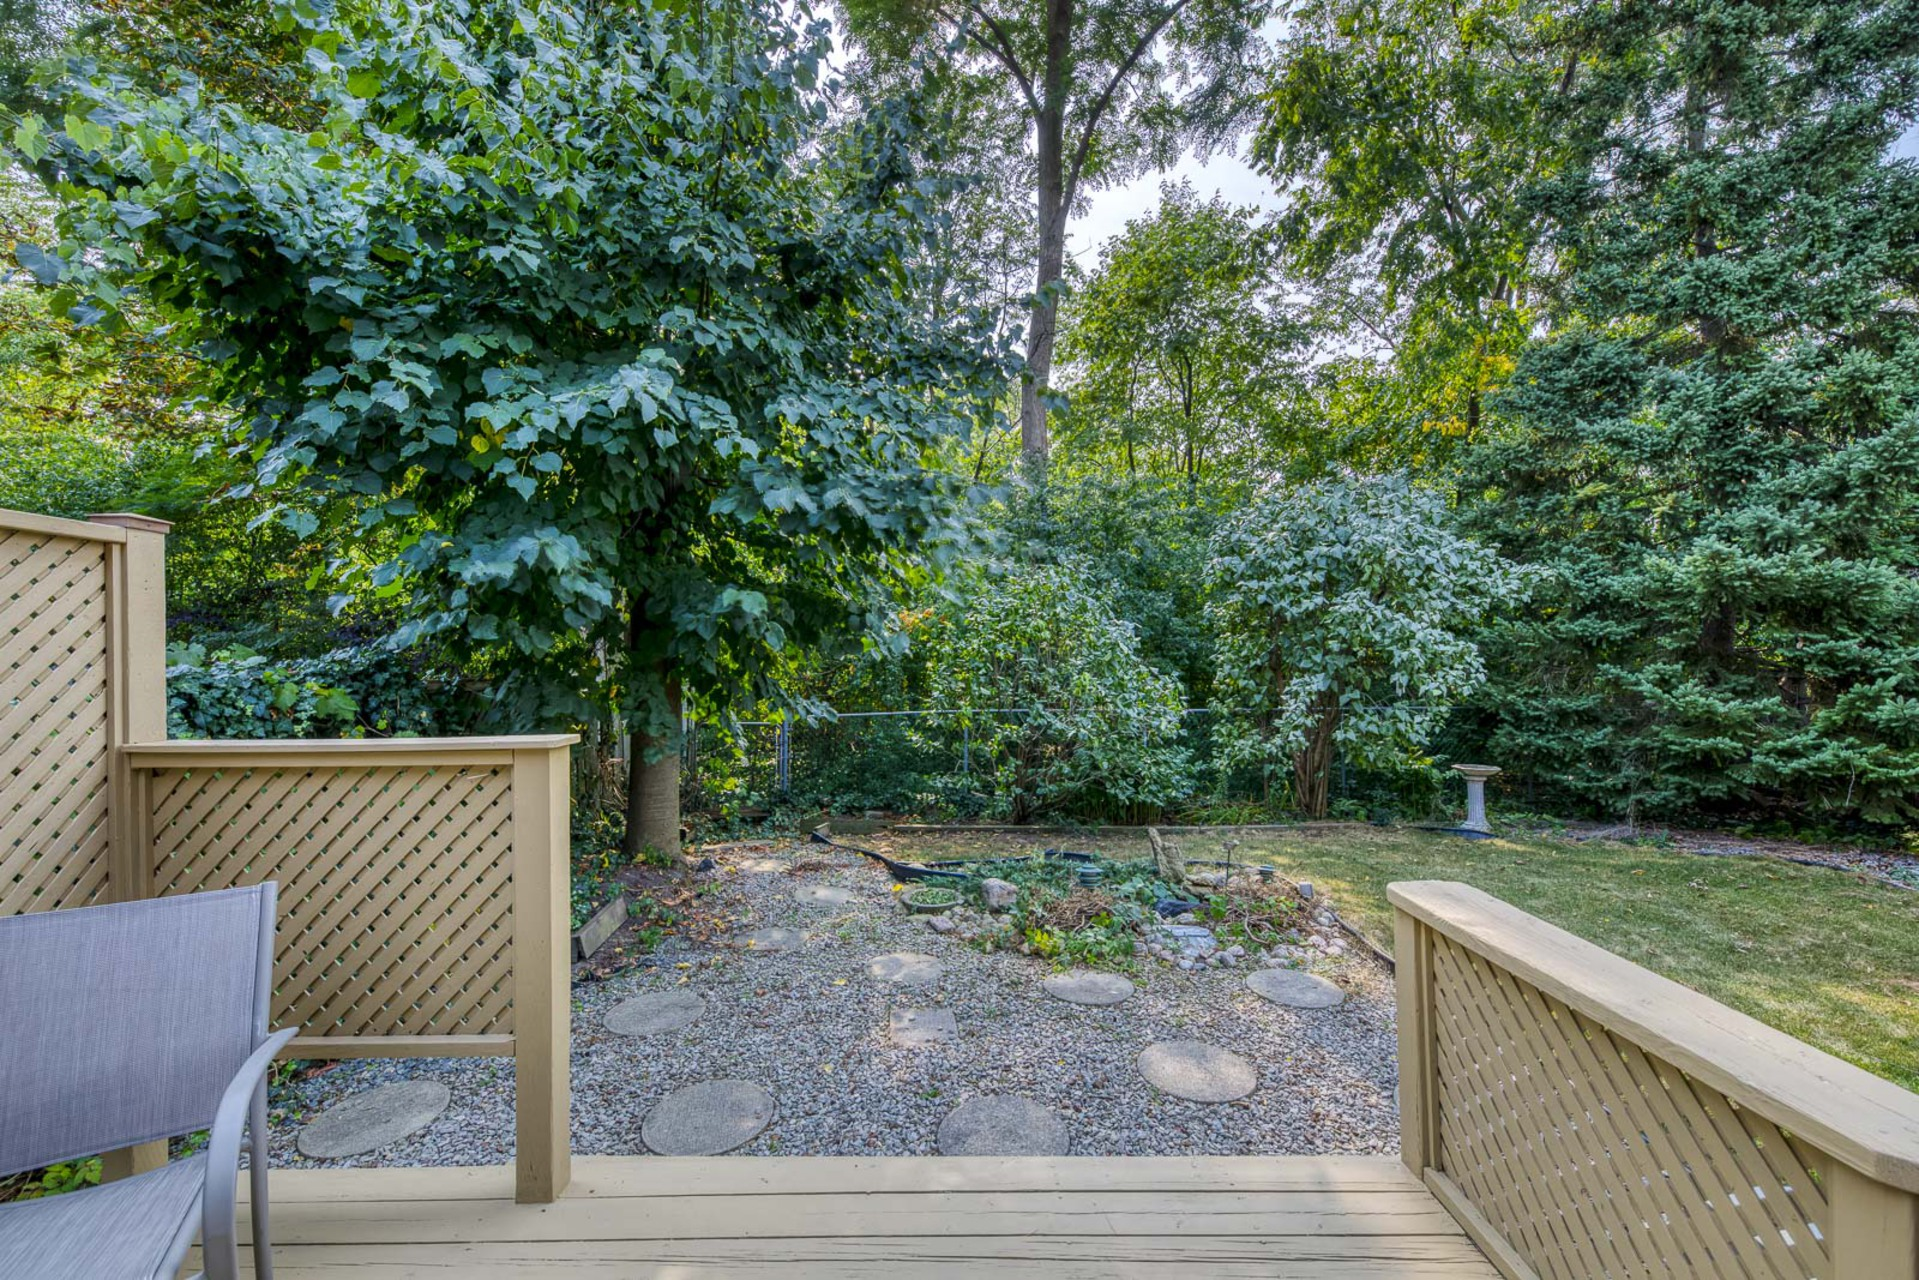 mls-57 at 4246 Wakefield Crescent, Creditview, Mississauga